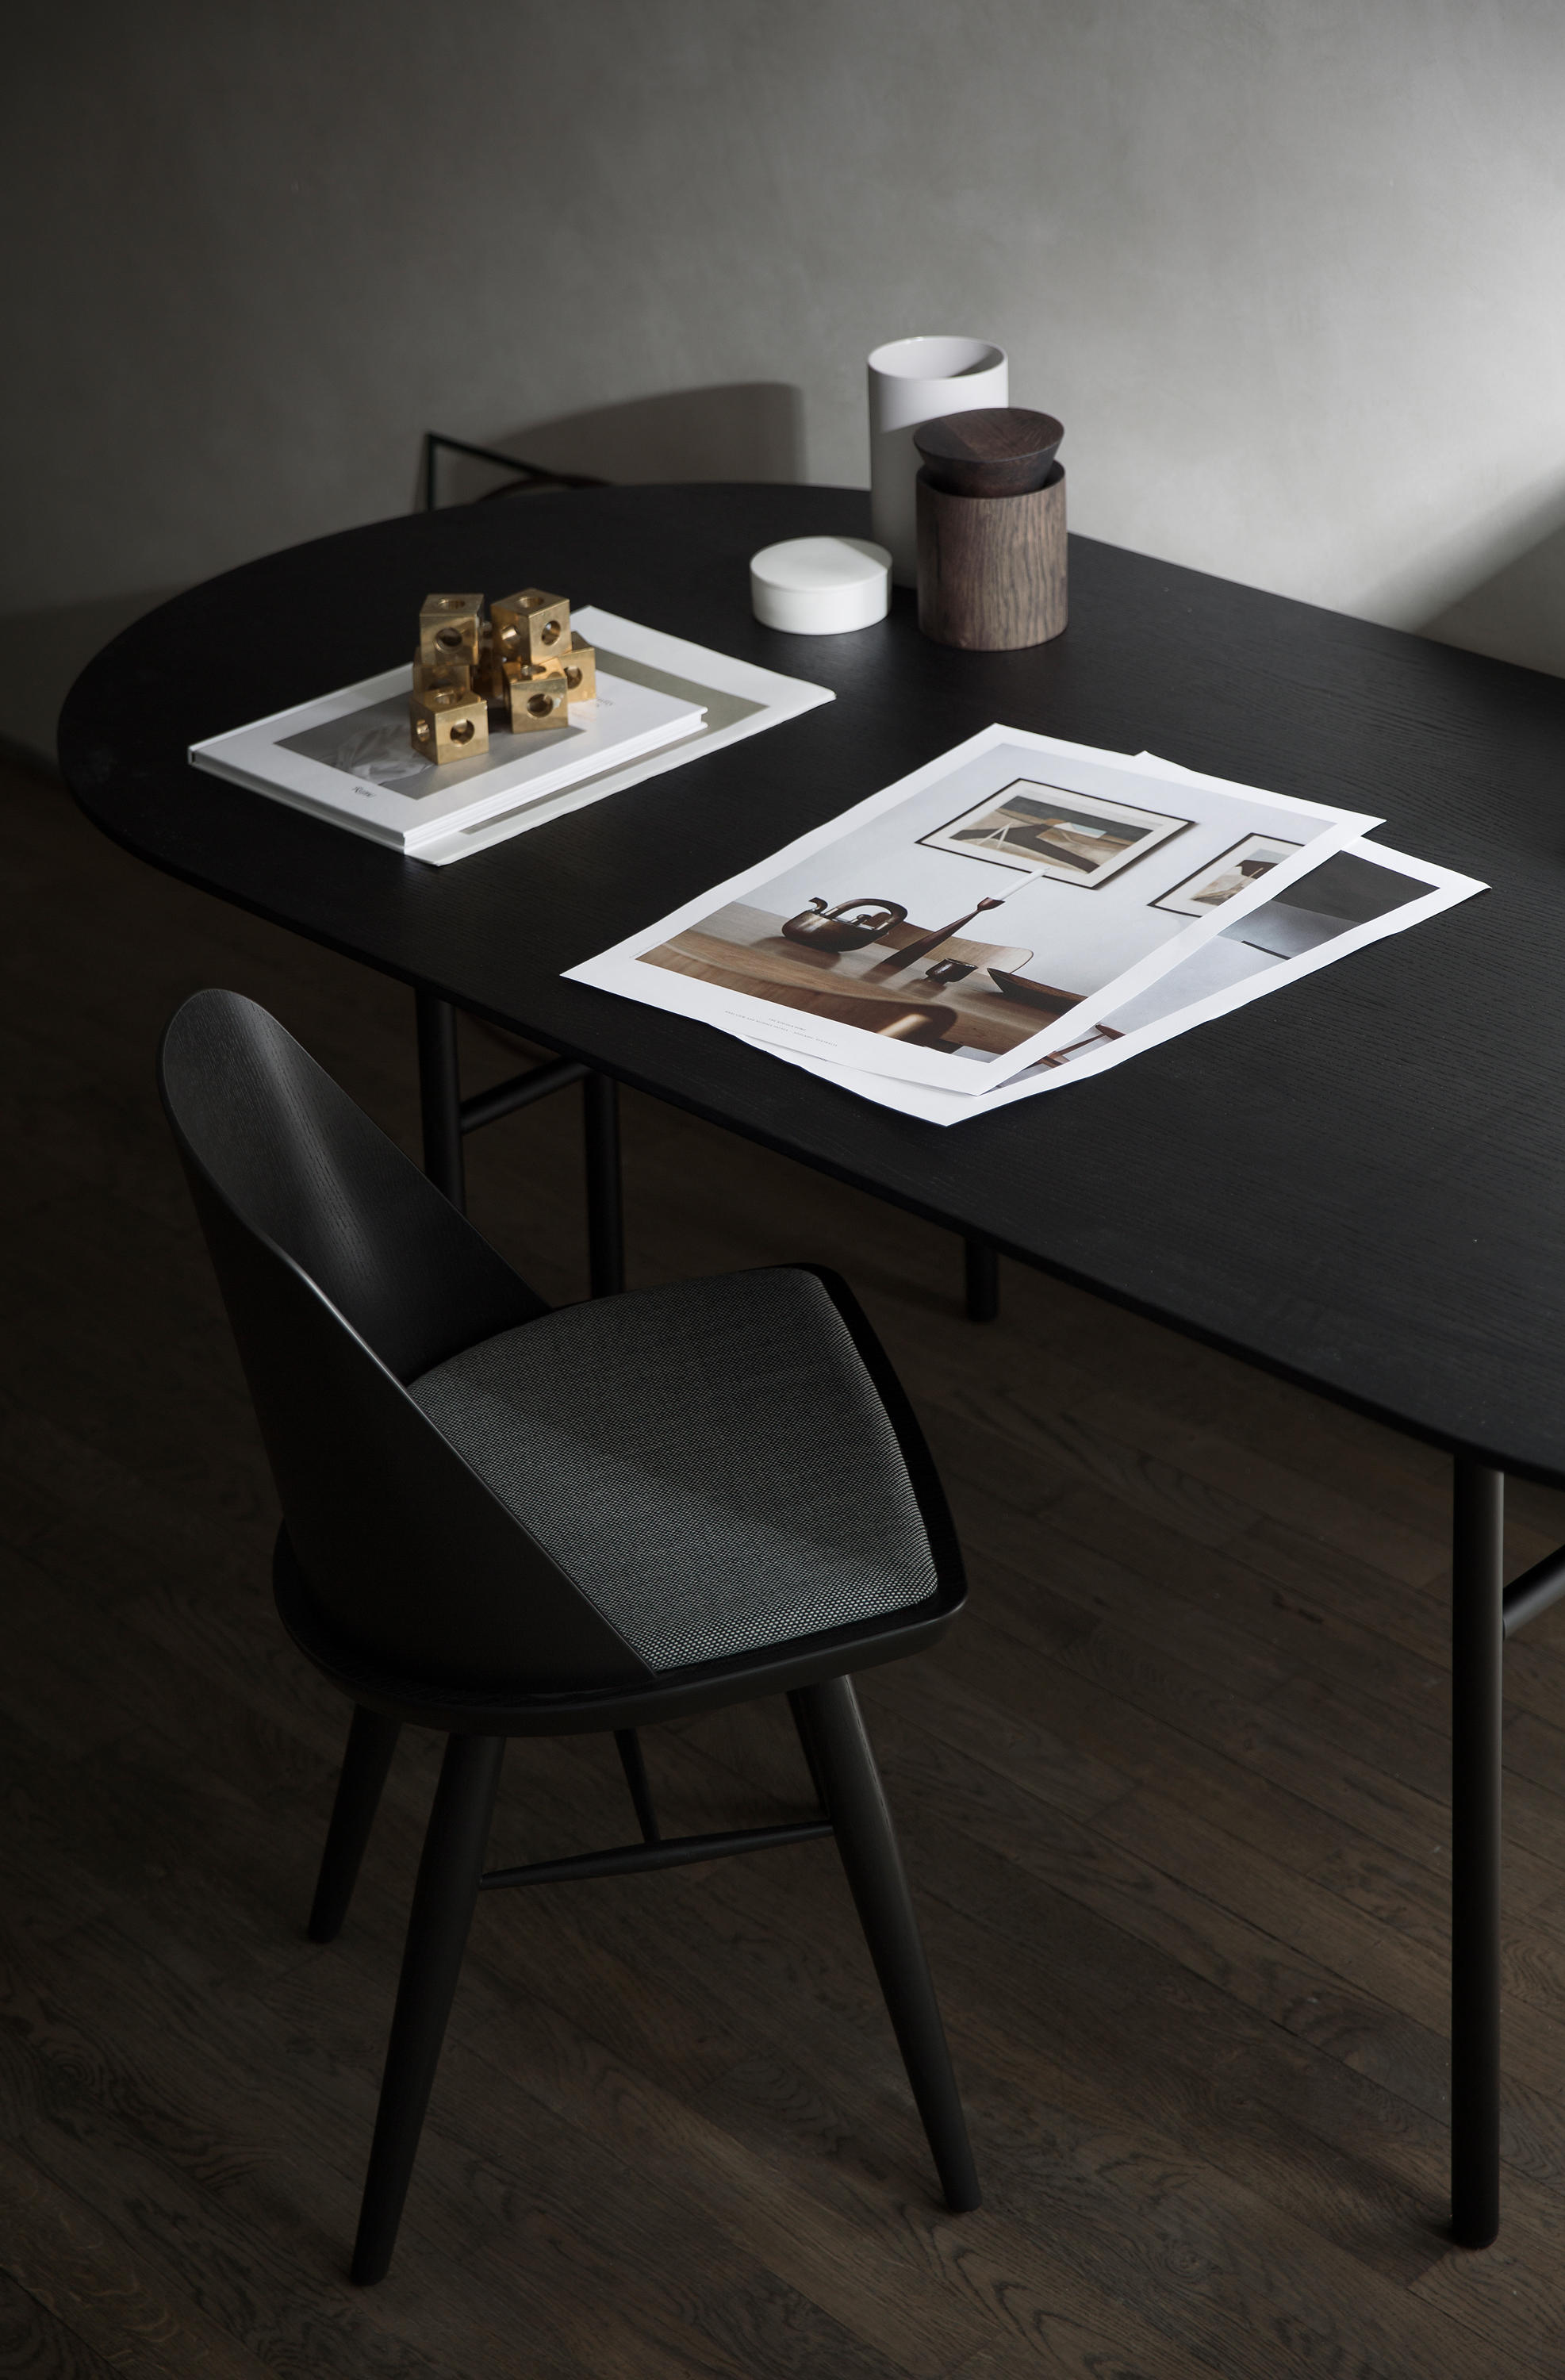 snaregade dining table rectangular black restaurant tables from menu architonic. Black Bedroom Furniture Sets. Home Design Ideas